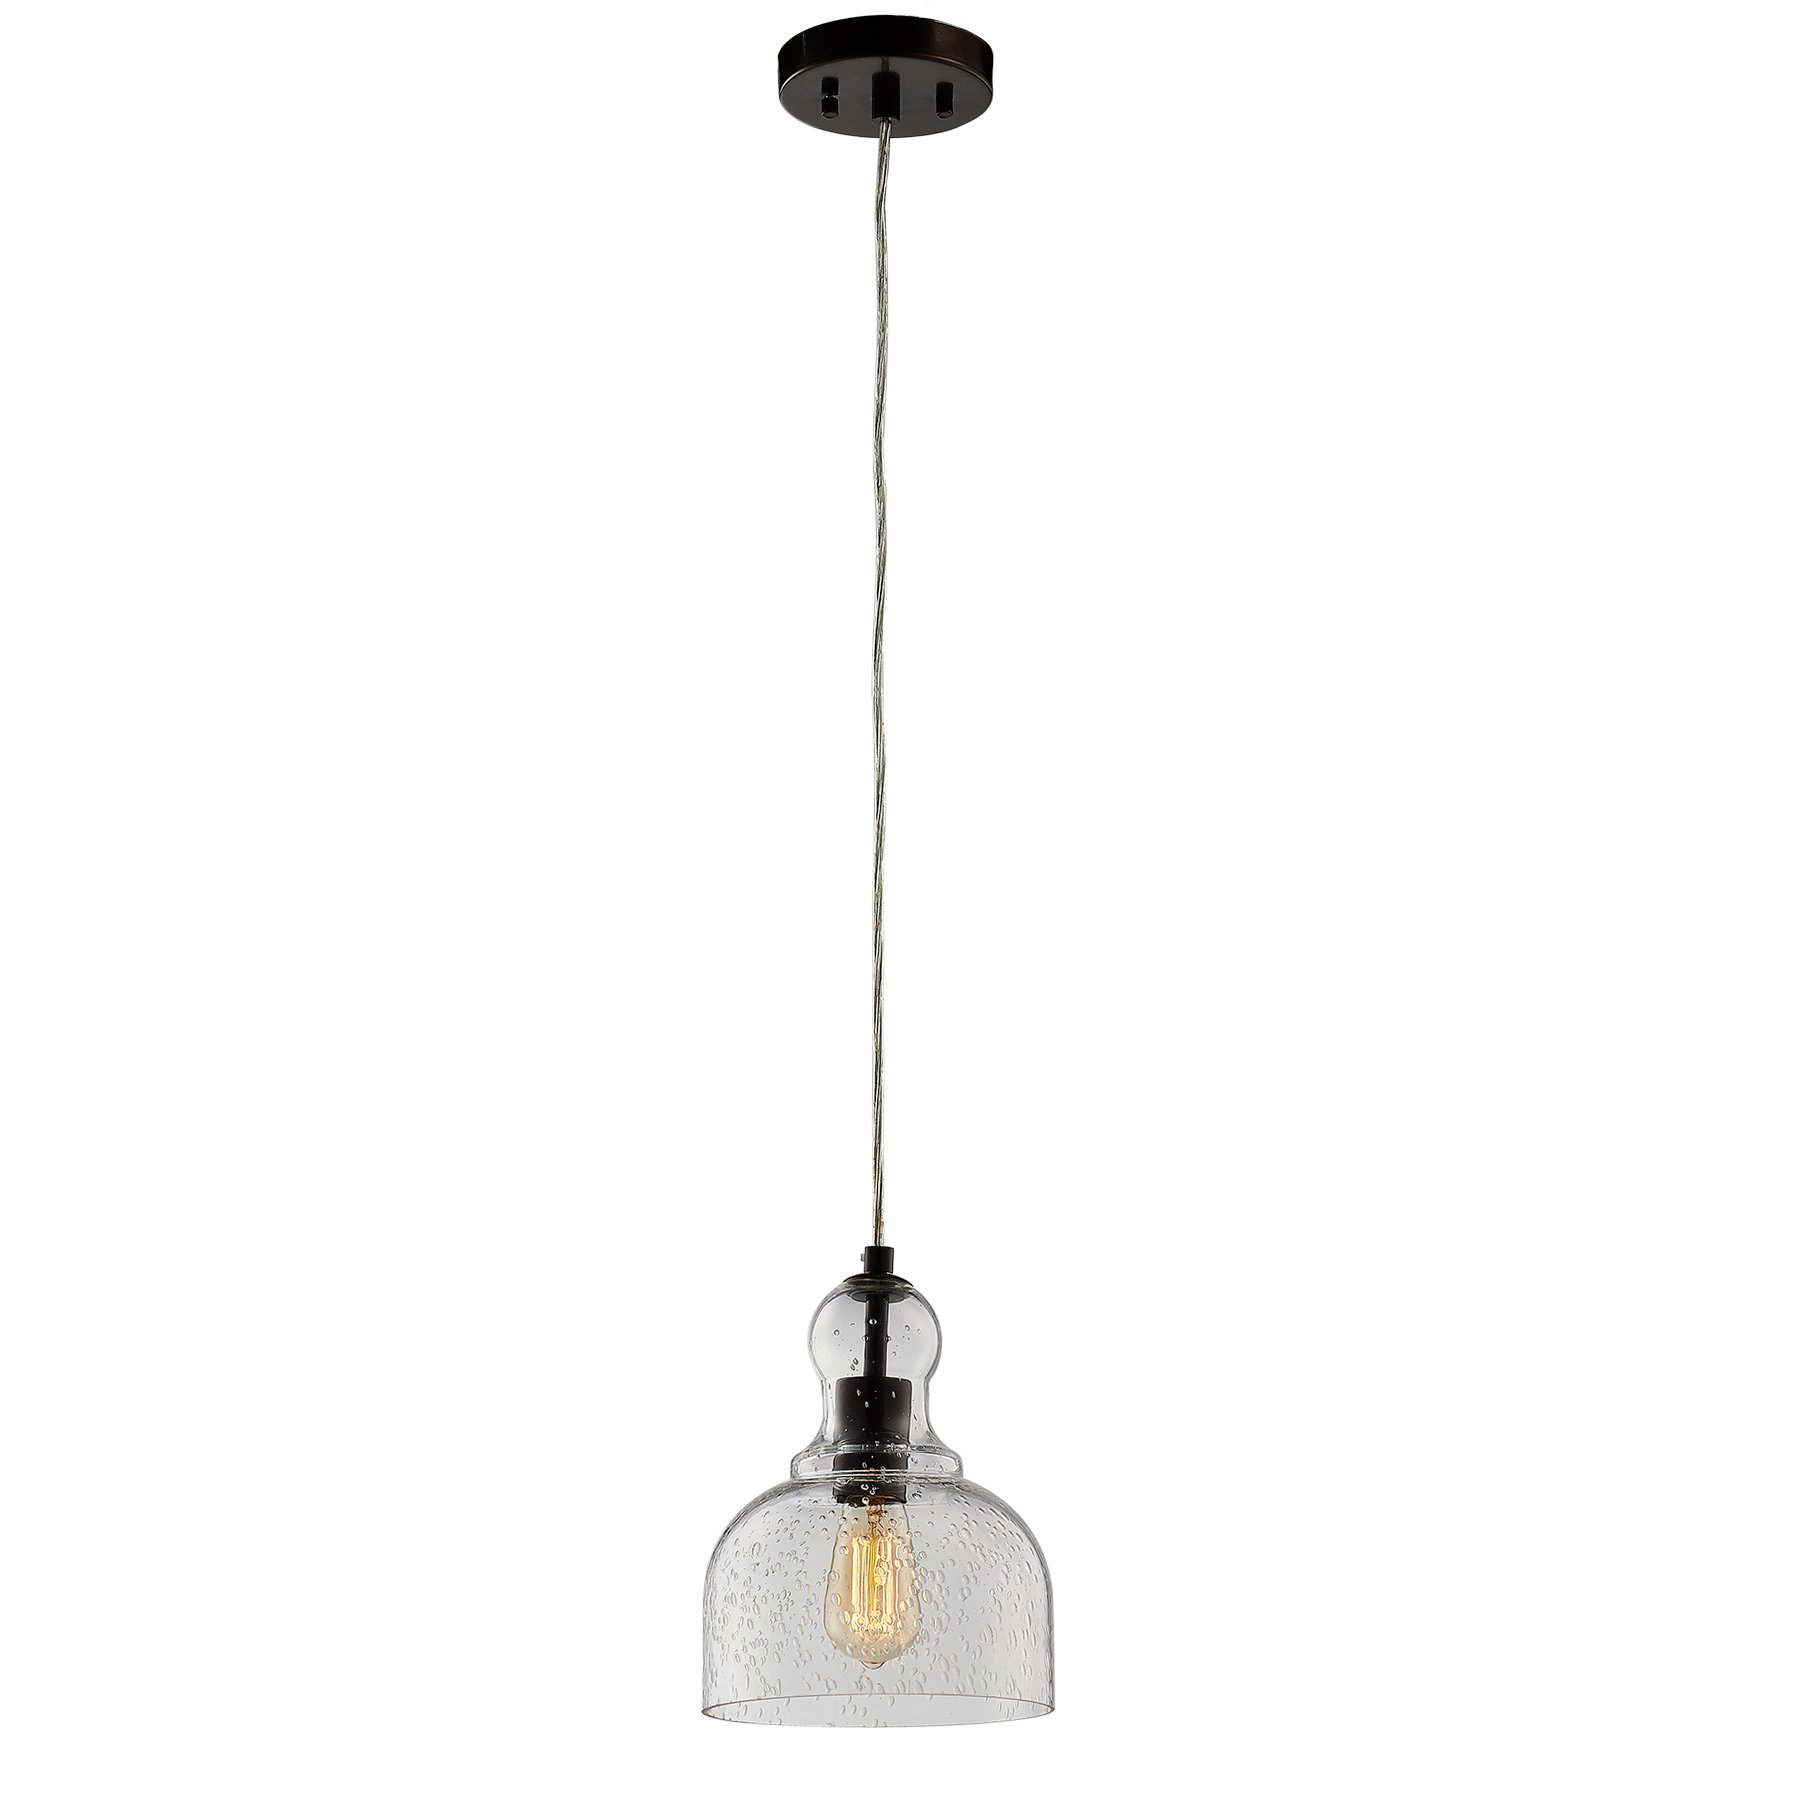 CO-Z Bronze Kitchen Pendant Light with 8'' Bubble Glass Shade, Antique Style Hanging Ceiling Fixture for Kitchen Island Dining Room Bar Farmhouse Lighting, Adjustable Handblown Glass Pendant Light